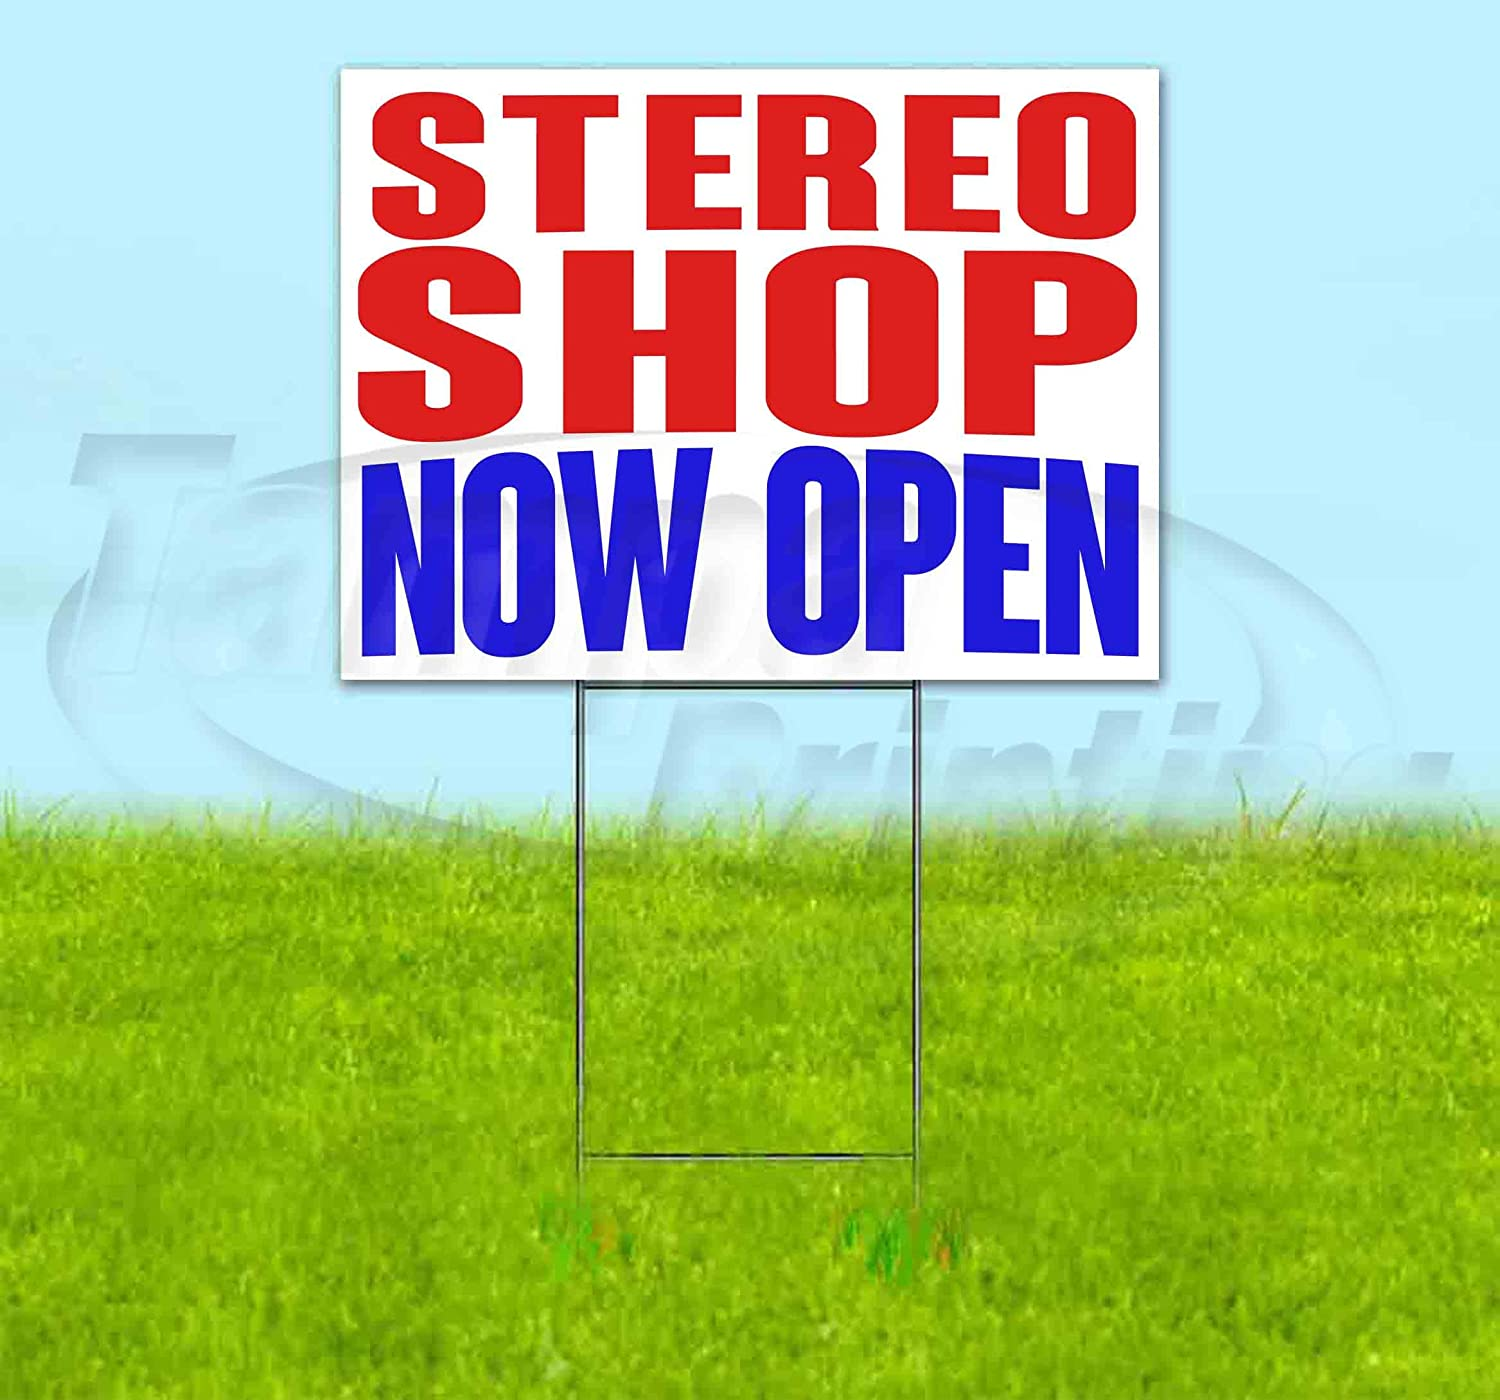 Stereo Shop Now Open 18